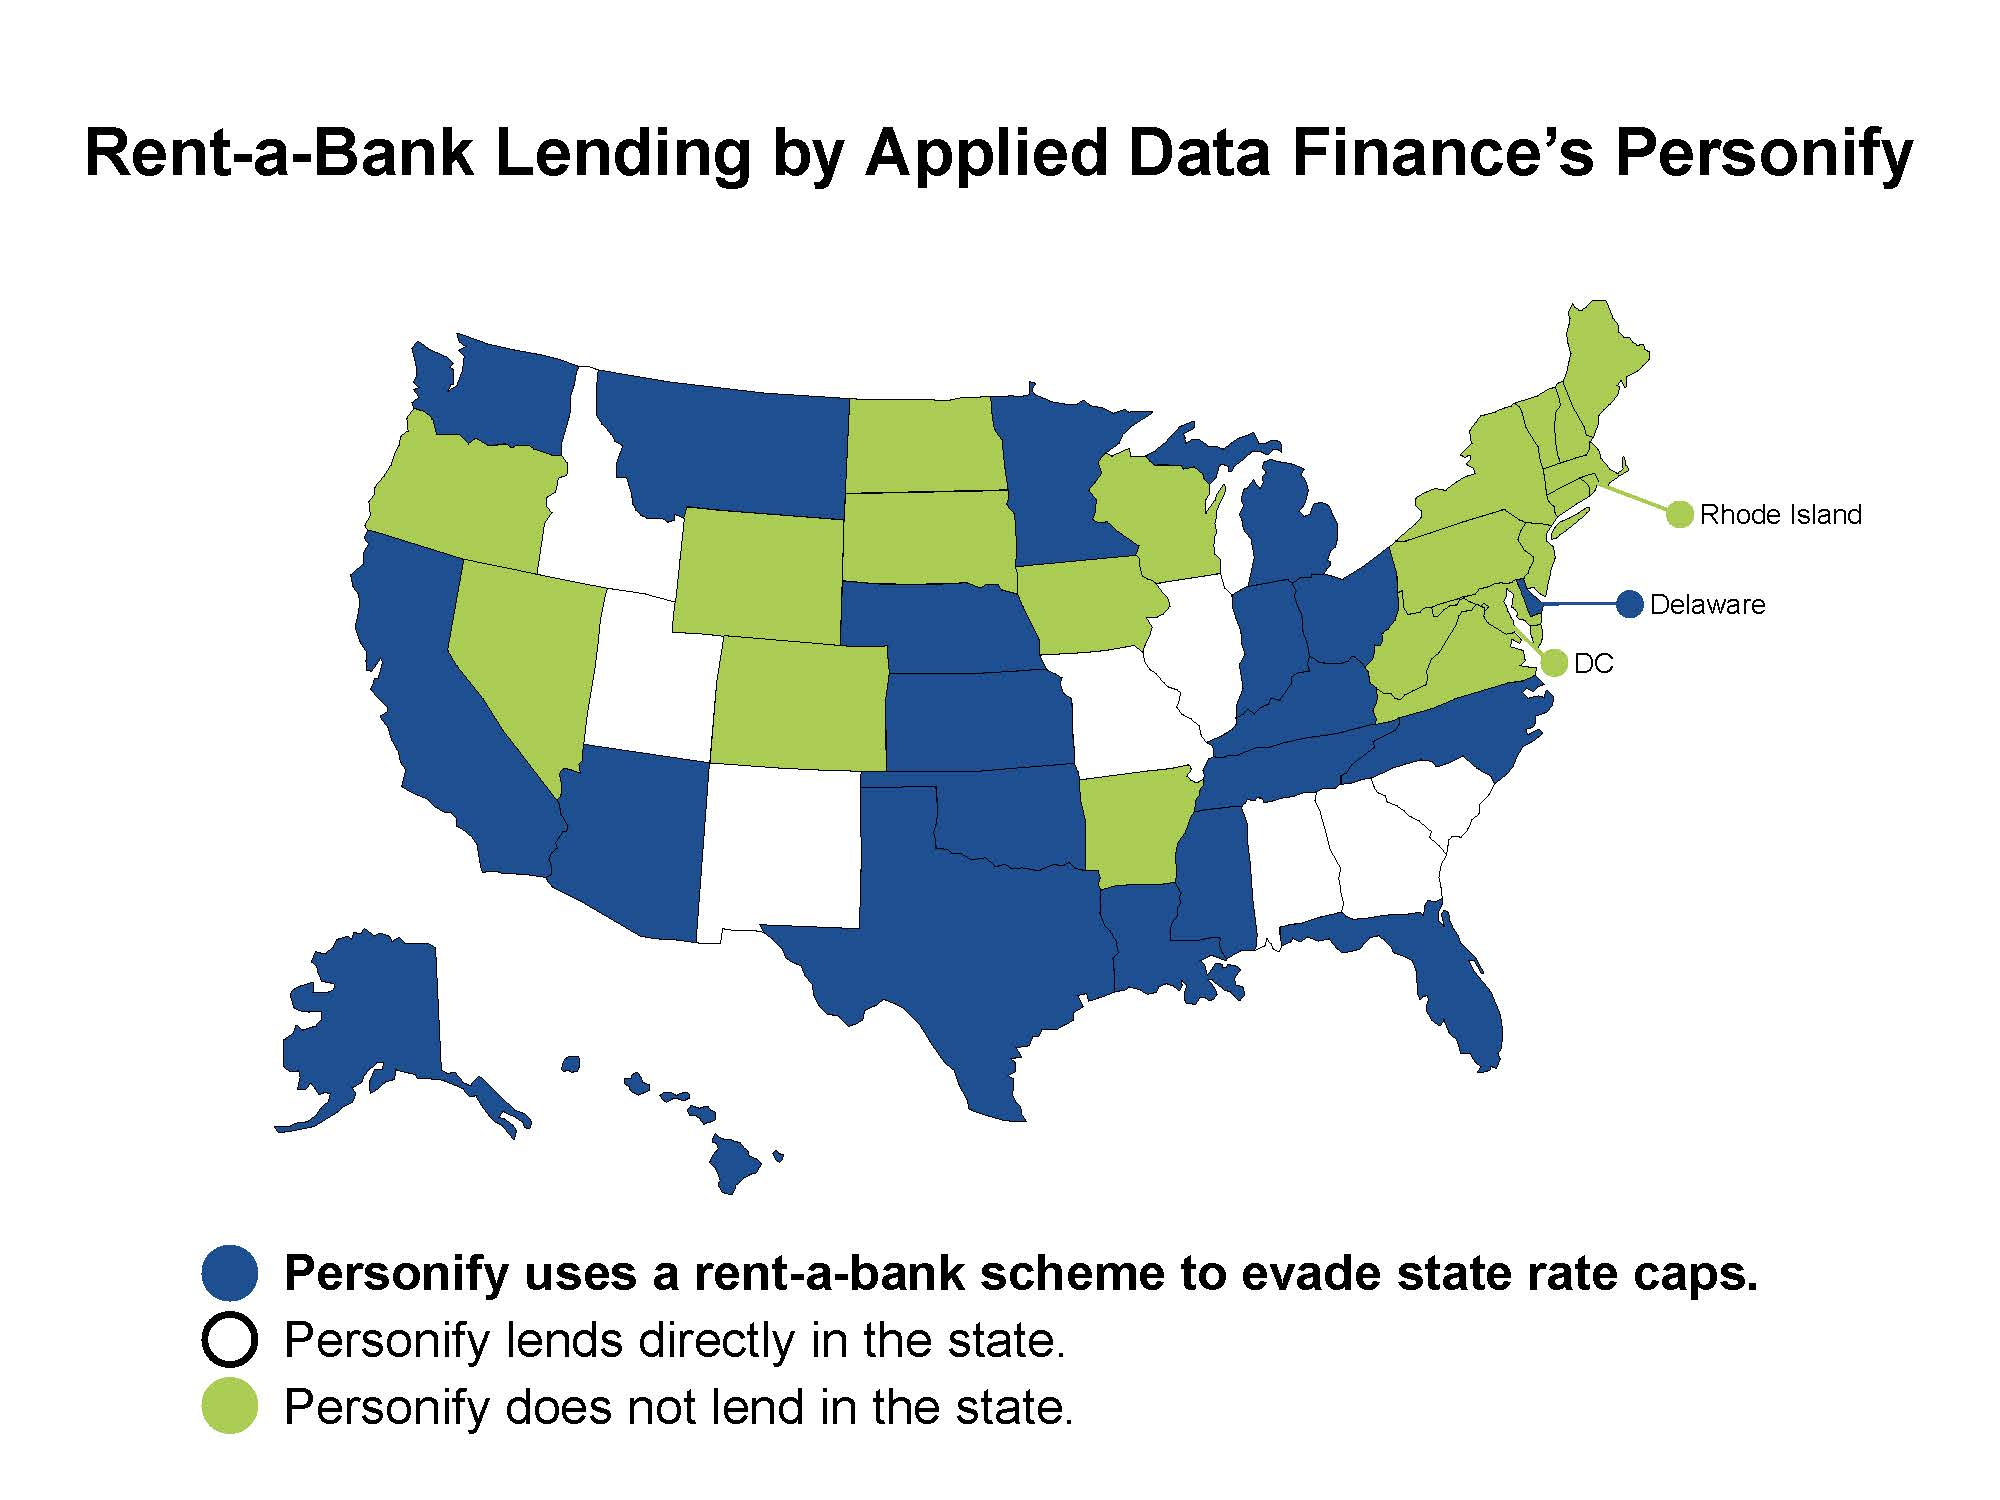 Map of the U.S. in which the states that Personify uses rent-a-bank schemes to avoid state rate caps are colored in blue. States in which Personify directly lends are white, while the states in which the organization does not lend are in green.